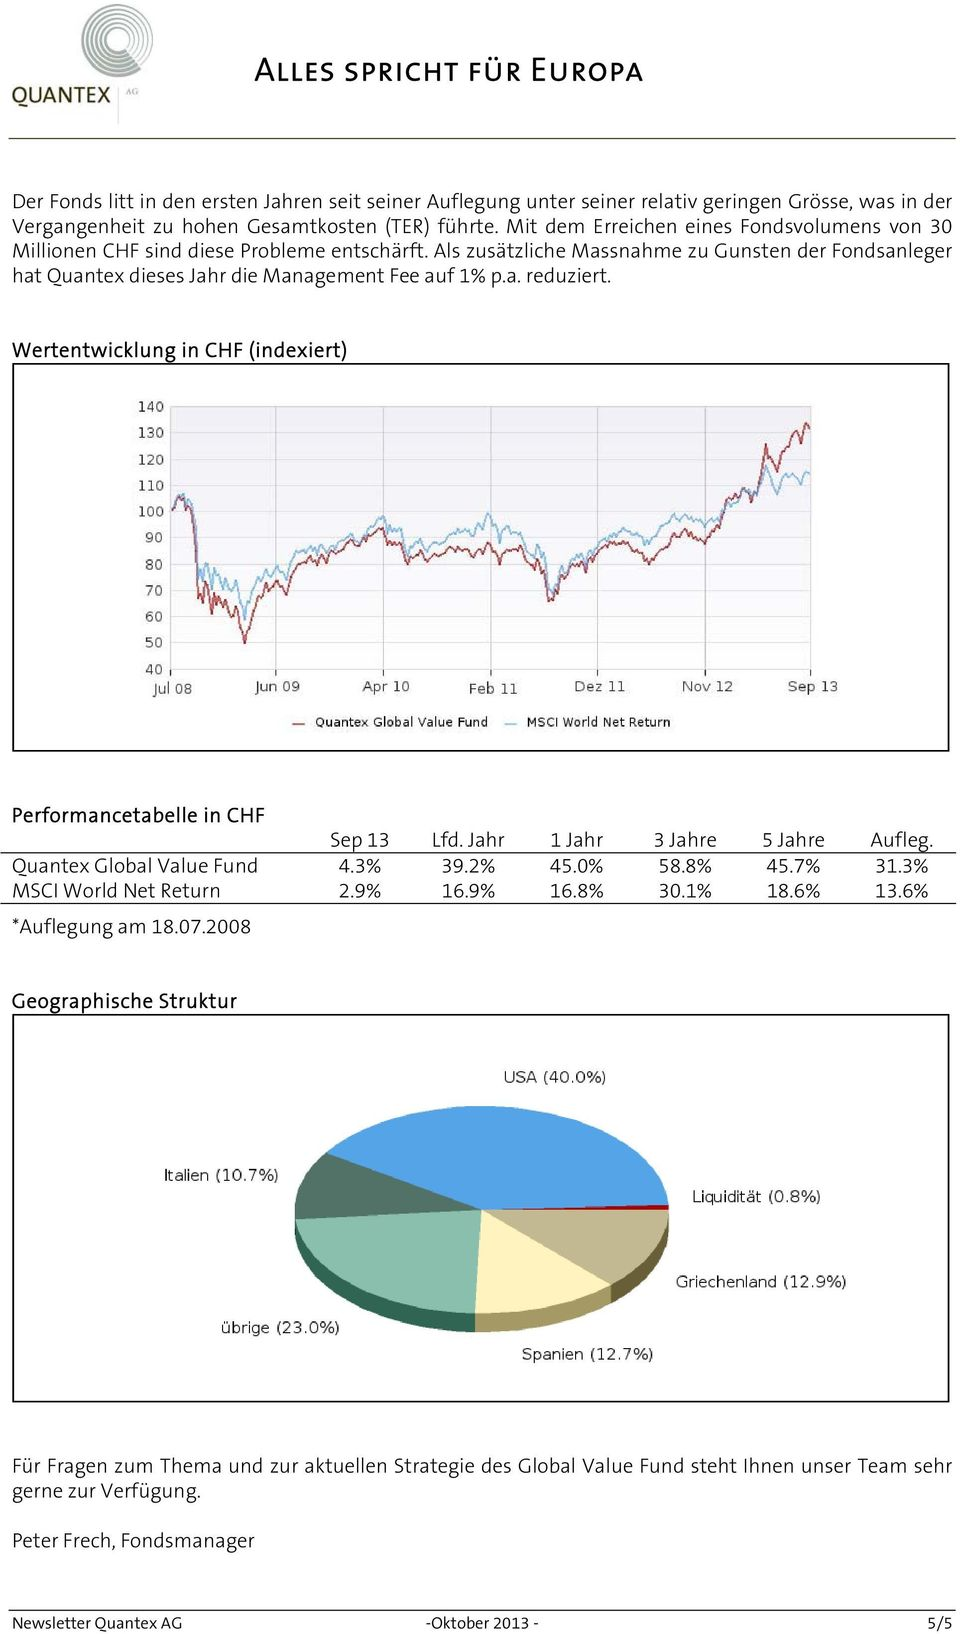 Wertentwicklung in CHF (indexiert) Performancetabelle in CHF Sep 13 Lfd. Jahr 1 Jahr 3 Jahre 5 Jahre Aufleg. Quantex Global Value Fund 4.3% 39.2% 45.0% 58.8% 45.7% 31.3% MSCI World Net Return 2.9% 16.